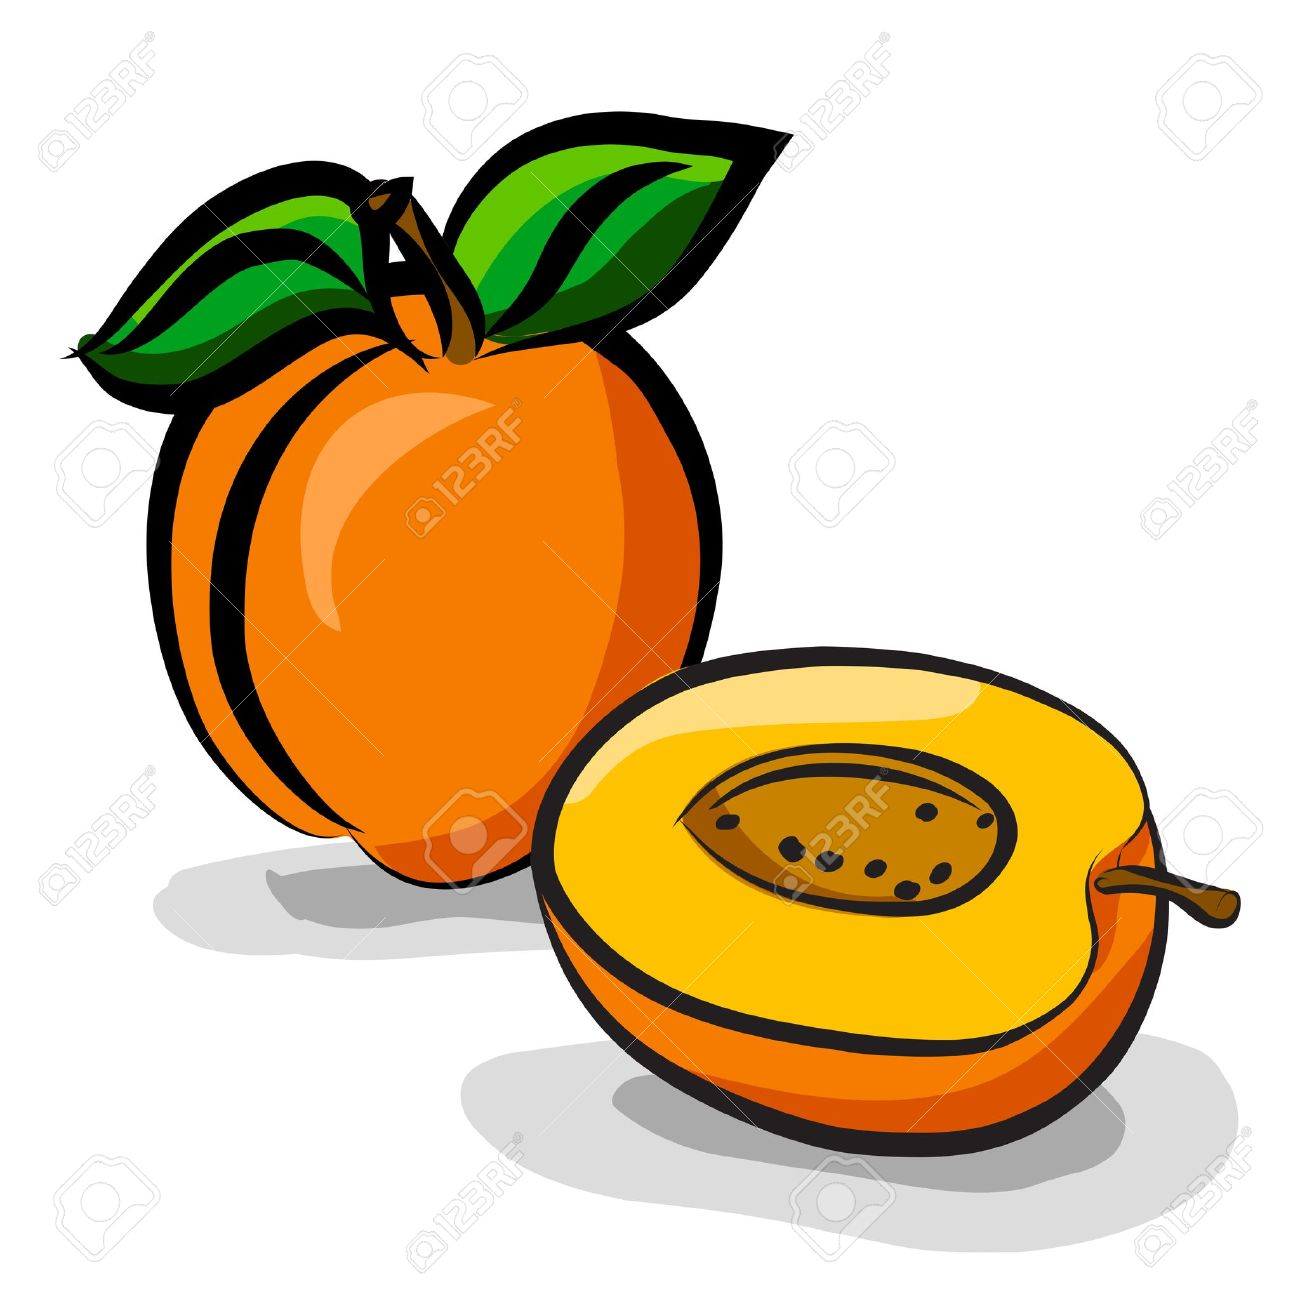 Apricot fruits sketch drawing - Apricot Clipart